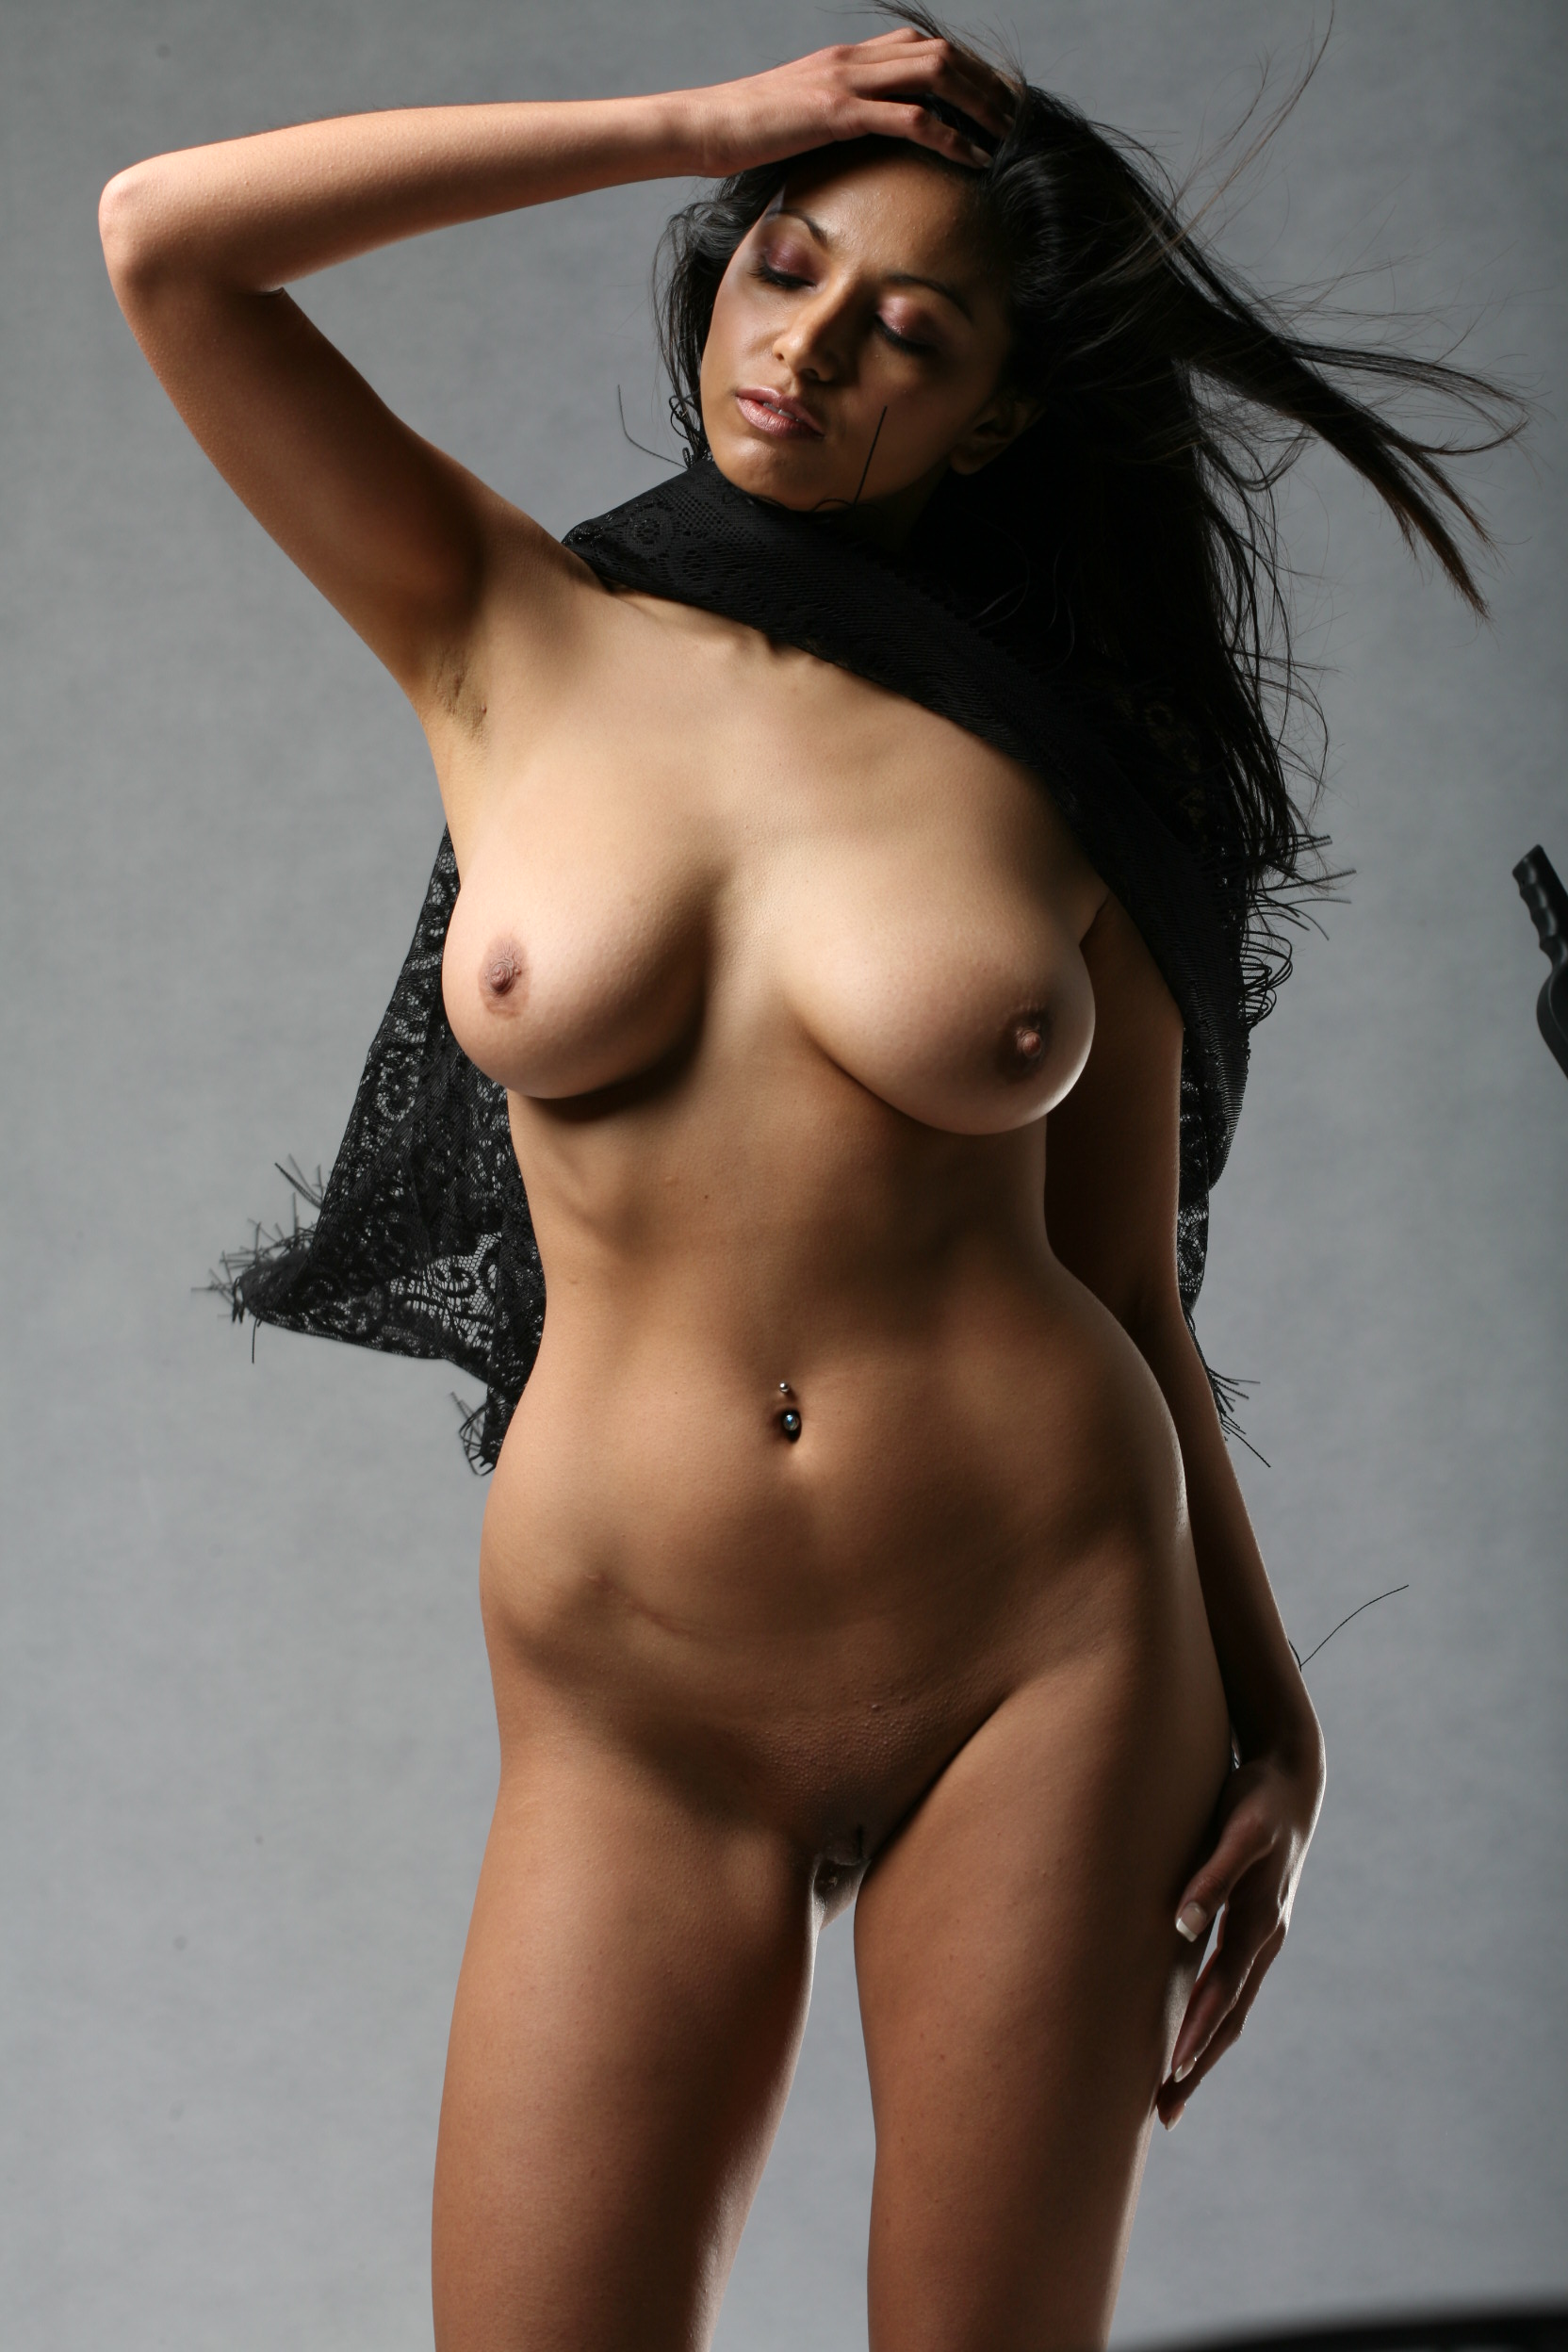 Her, Beautiful busty lady naked exposed just love